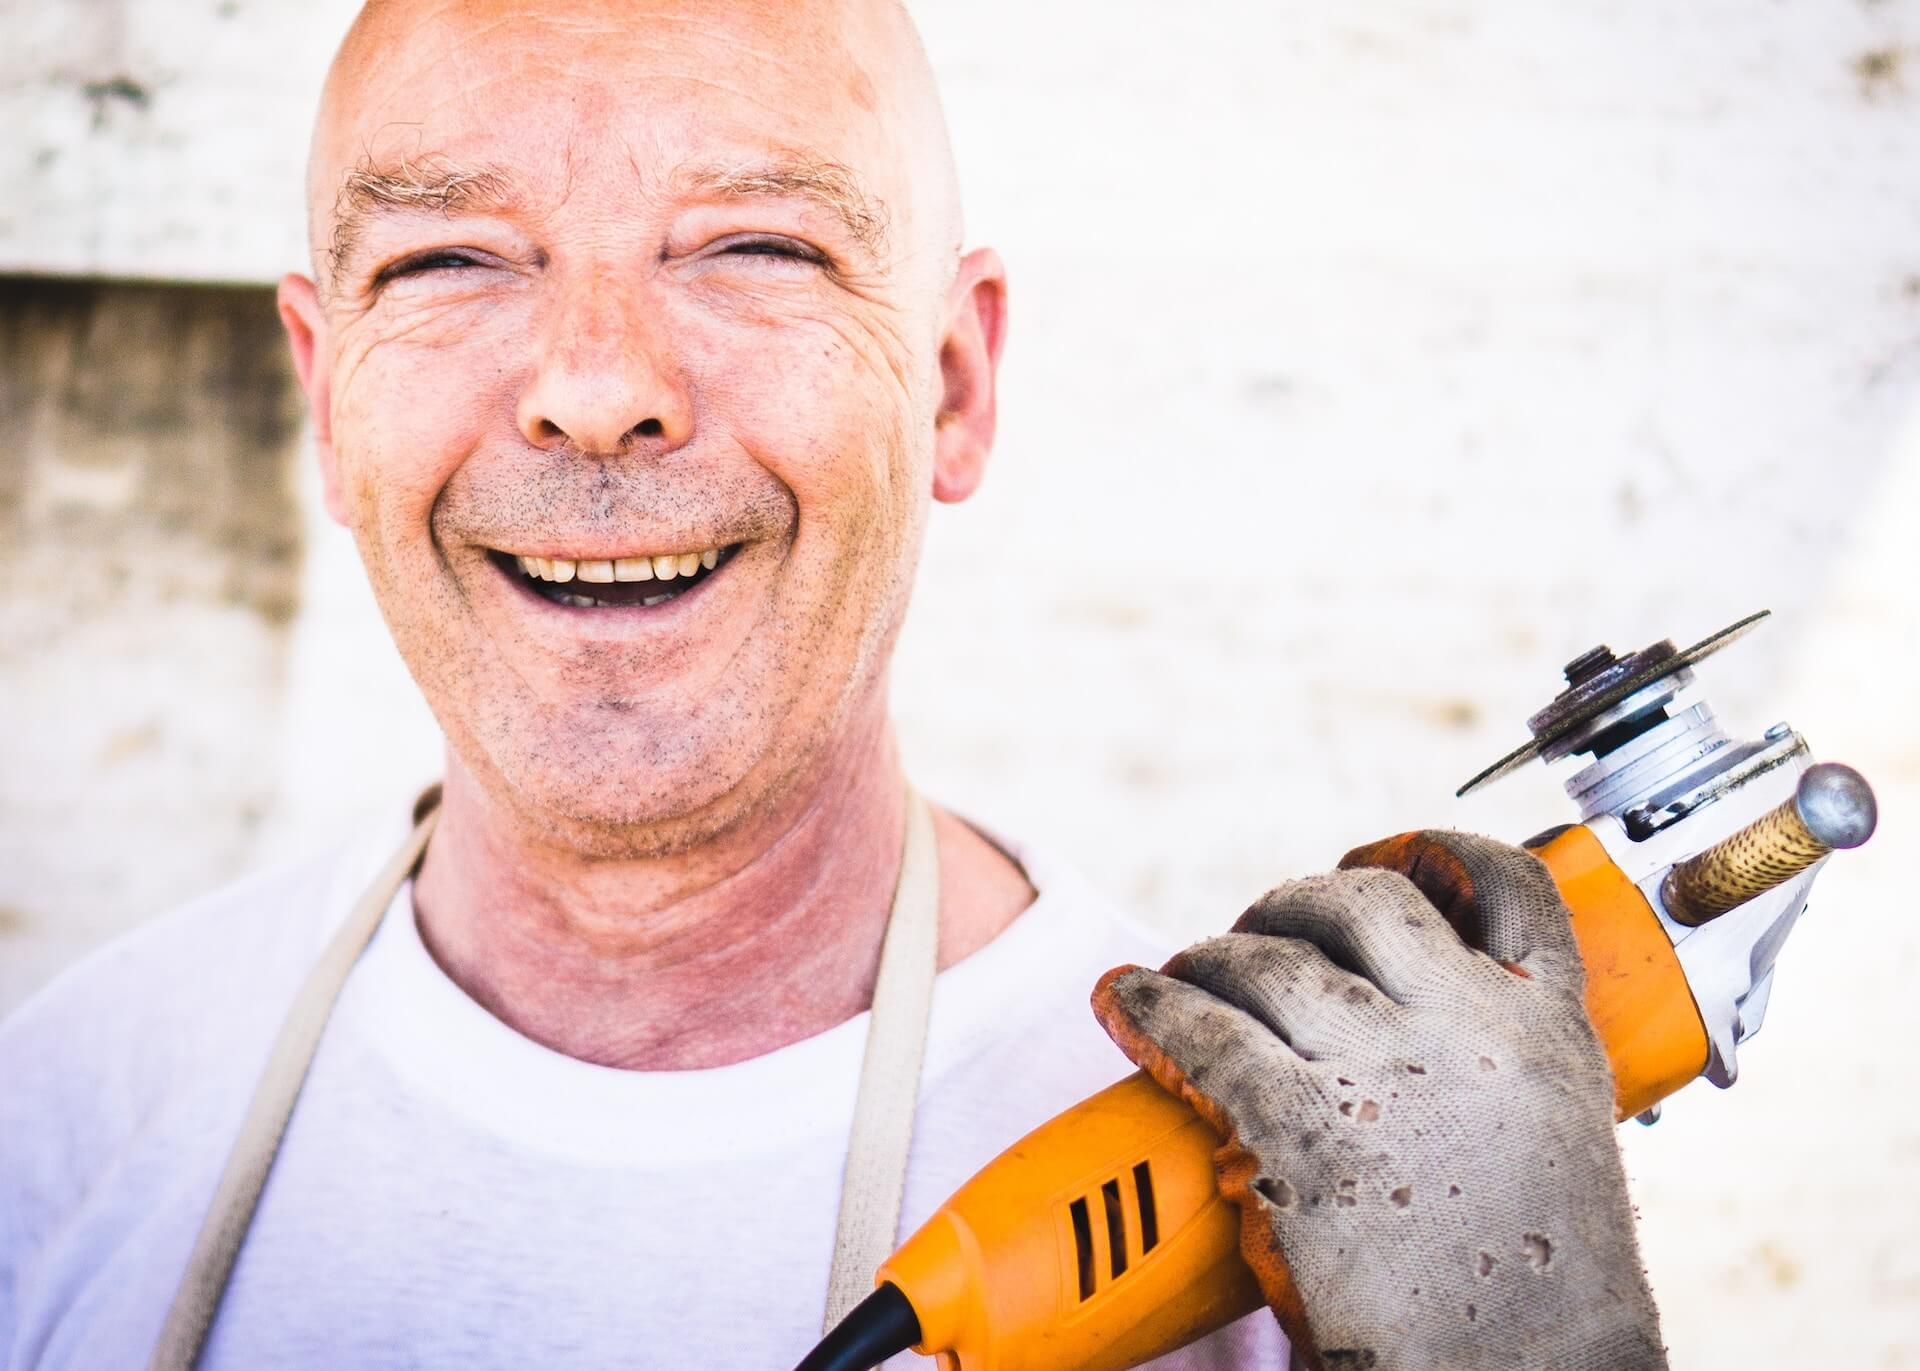 Personal accident insurance - For compensation for loss of income as well as medical costs that result from you becoming seriously injured or passing away due to your work